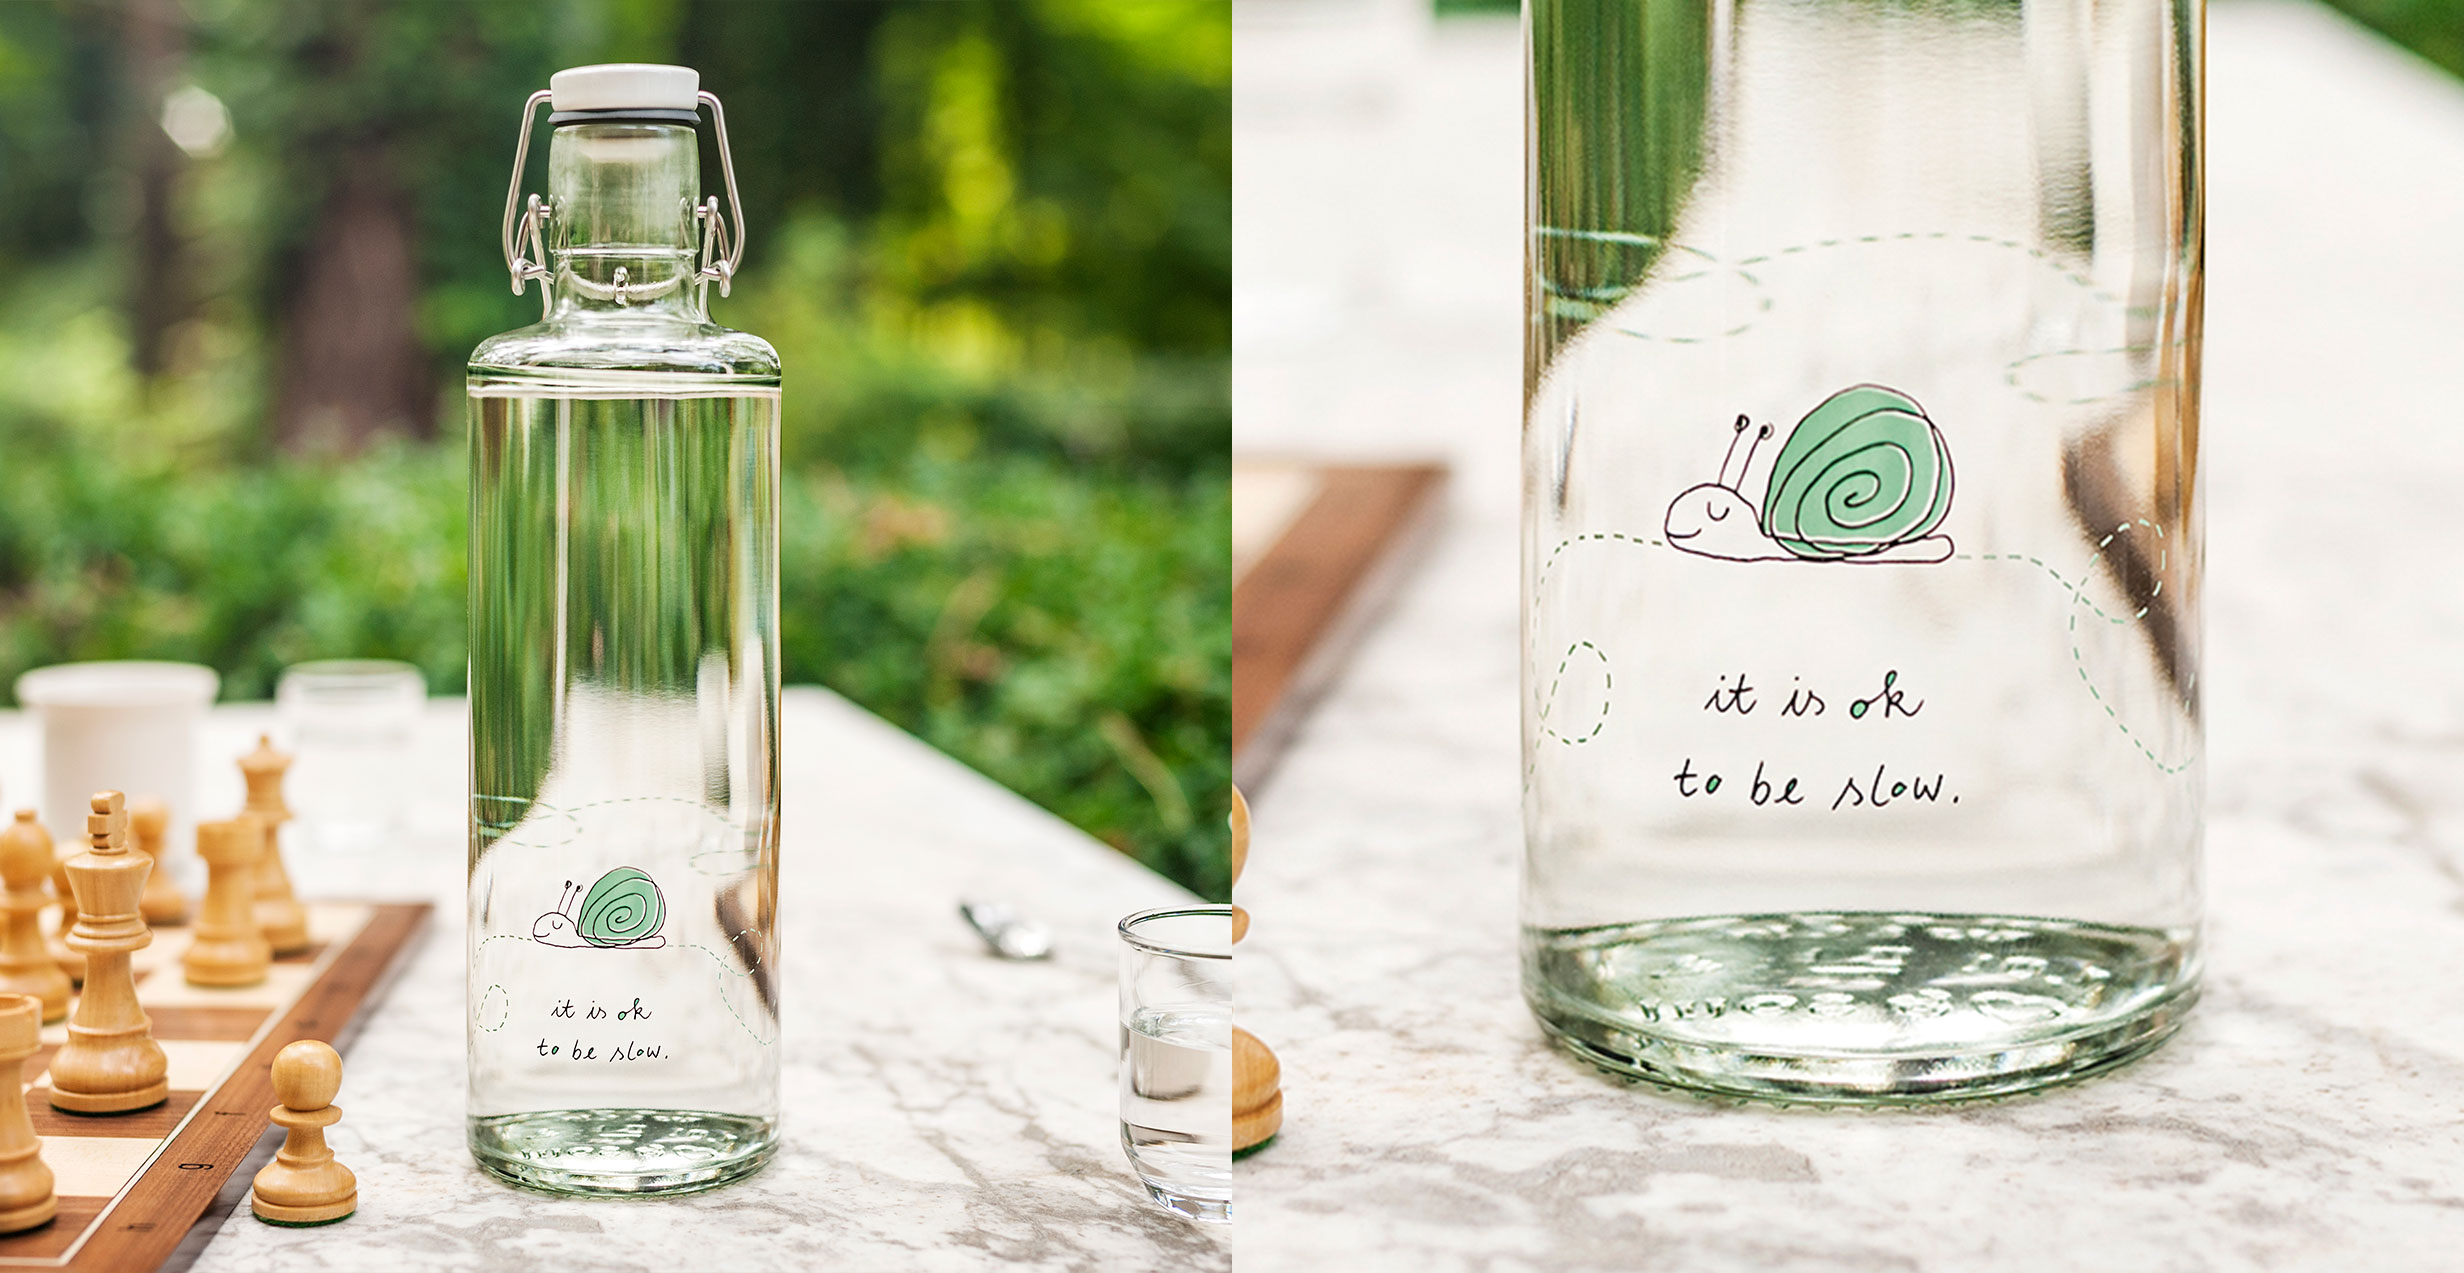 trinkflasche-ok-to-be-slow-soulbottles-blog